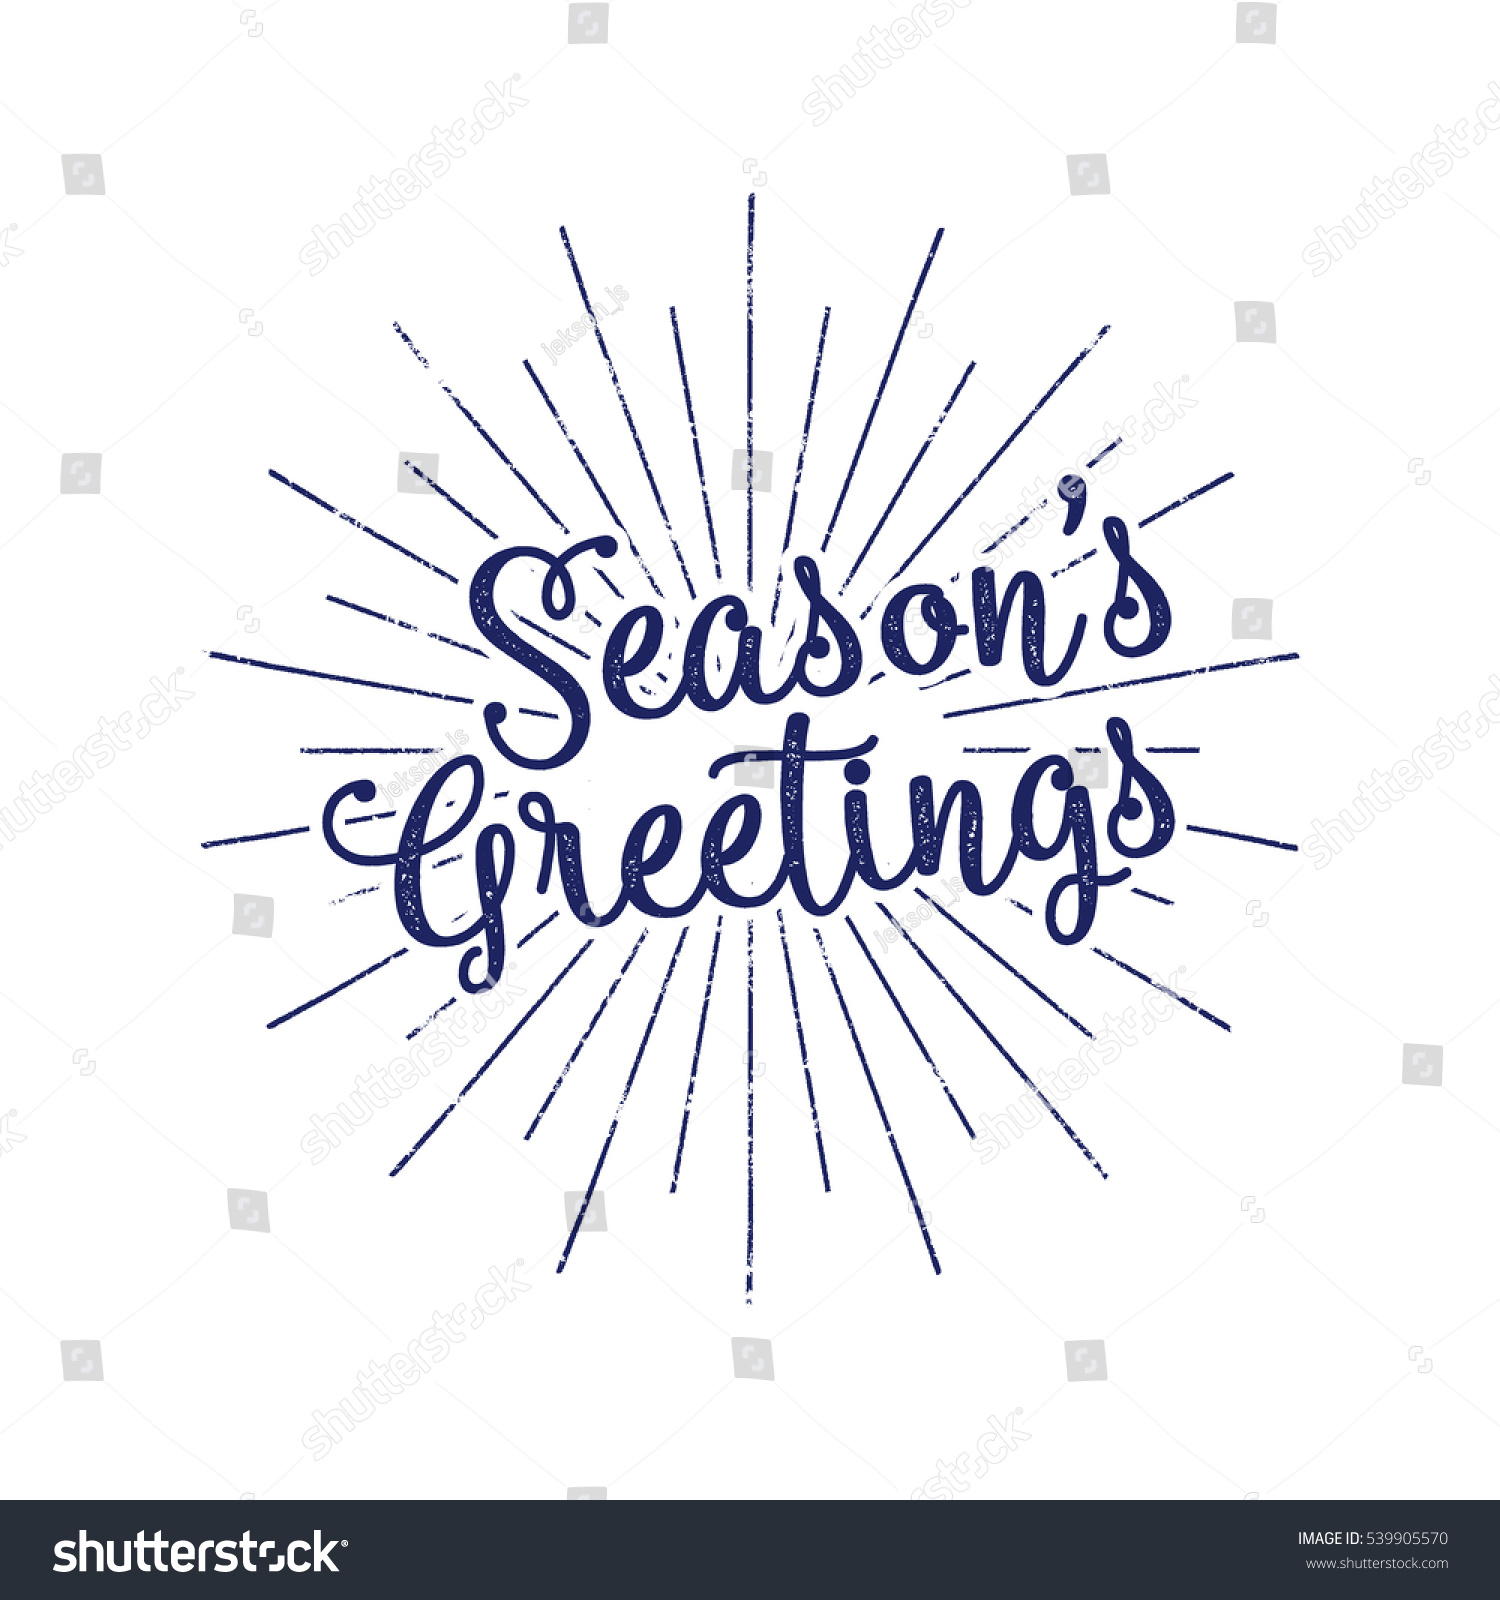 Christmas greetings lettering holiday wish saying stock illustration christmas greetings lettering holiday wish saying stock illustration 539905570 shutterstock m4hsunfo